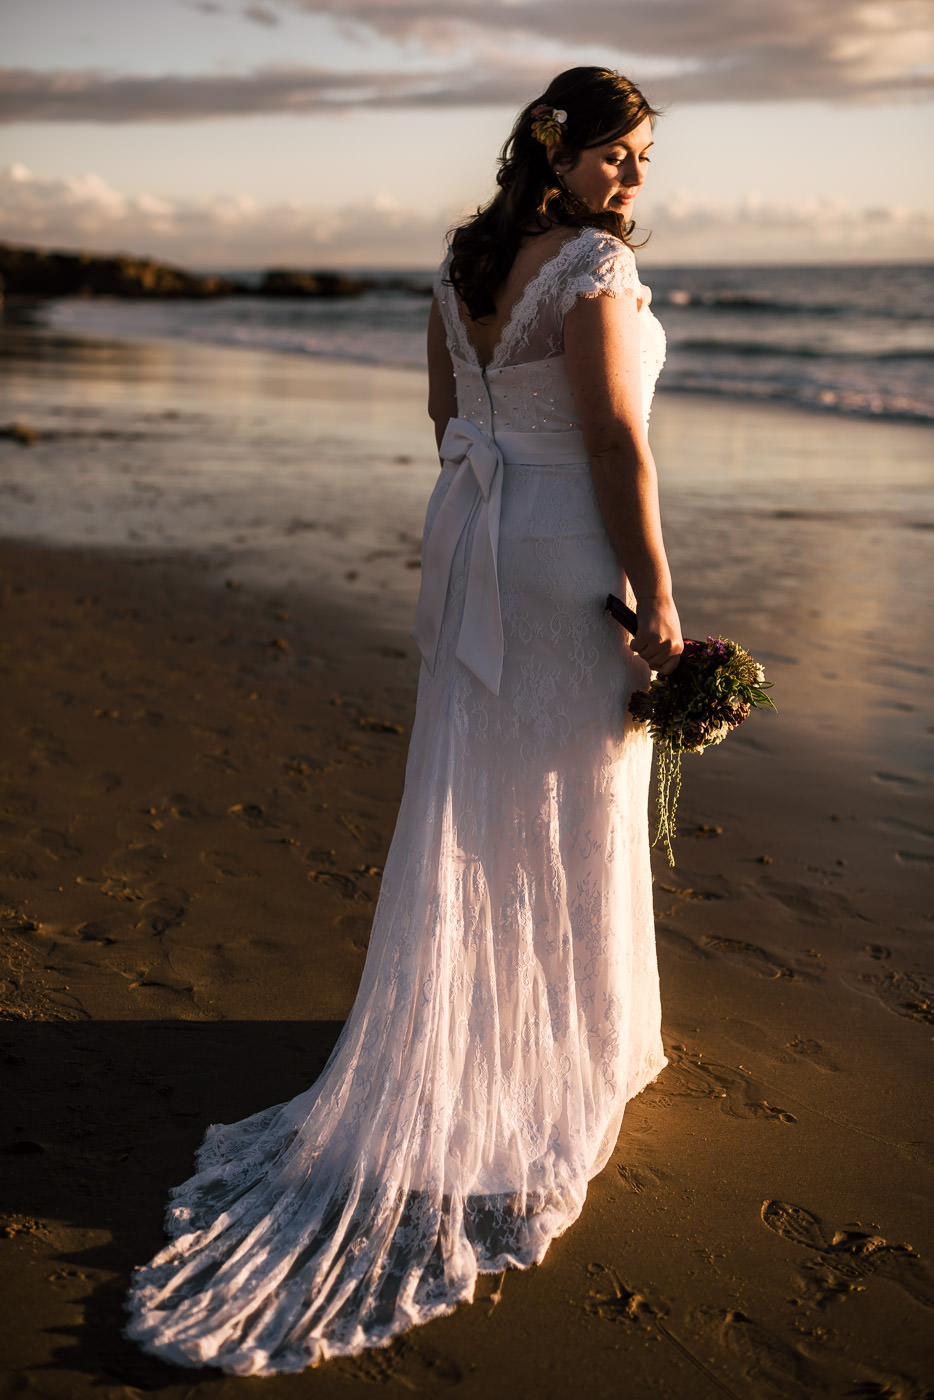 beautiful bride poses on the beach at sunset in her stunning dress after the intimate elopement